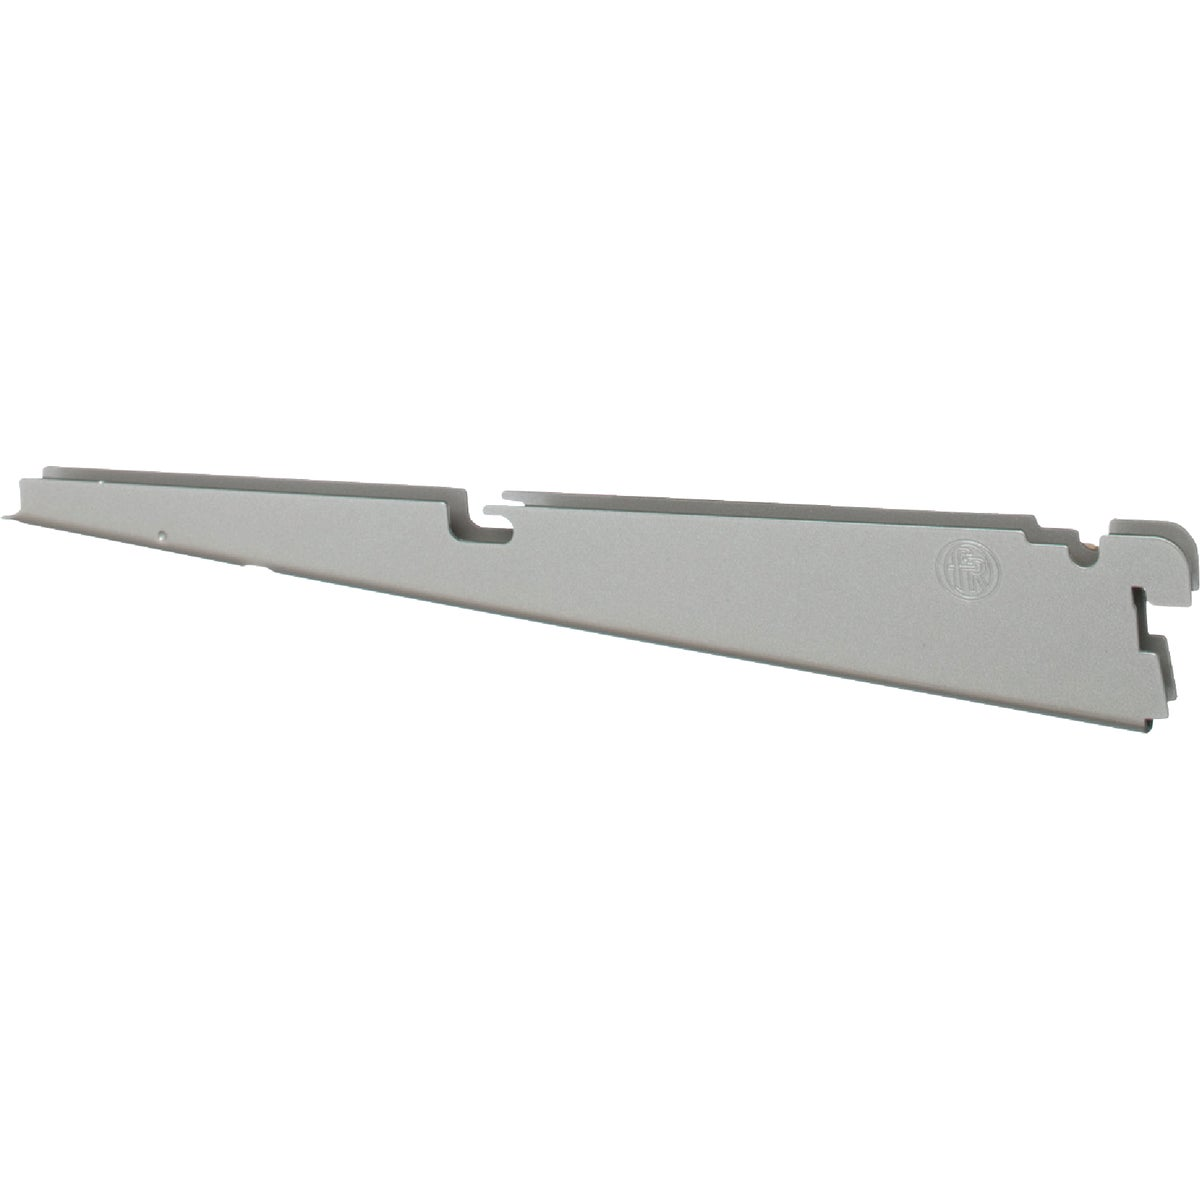 "12"" NKL SHELF BRACKET - 7913141245 by Schulte Corp"